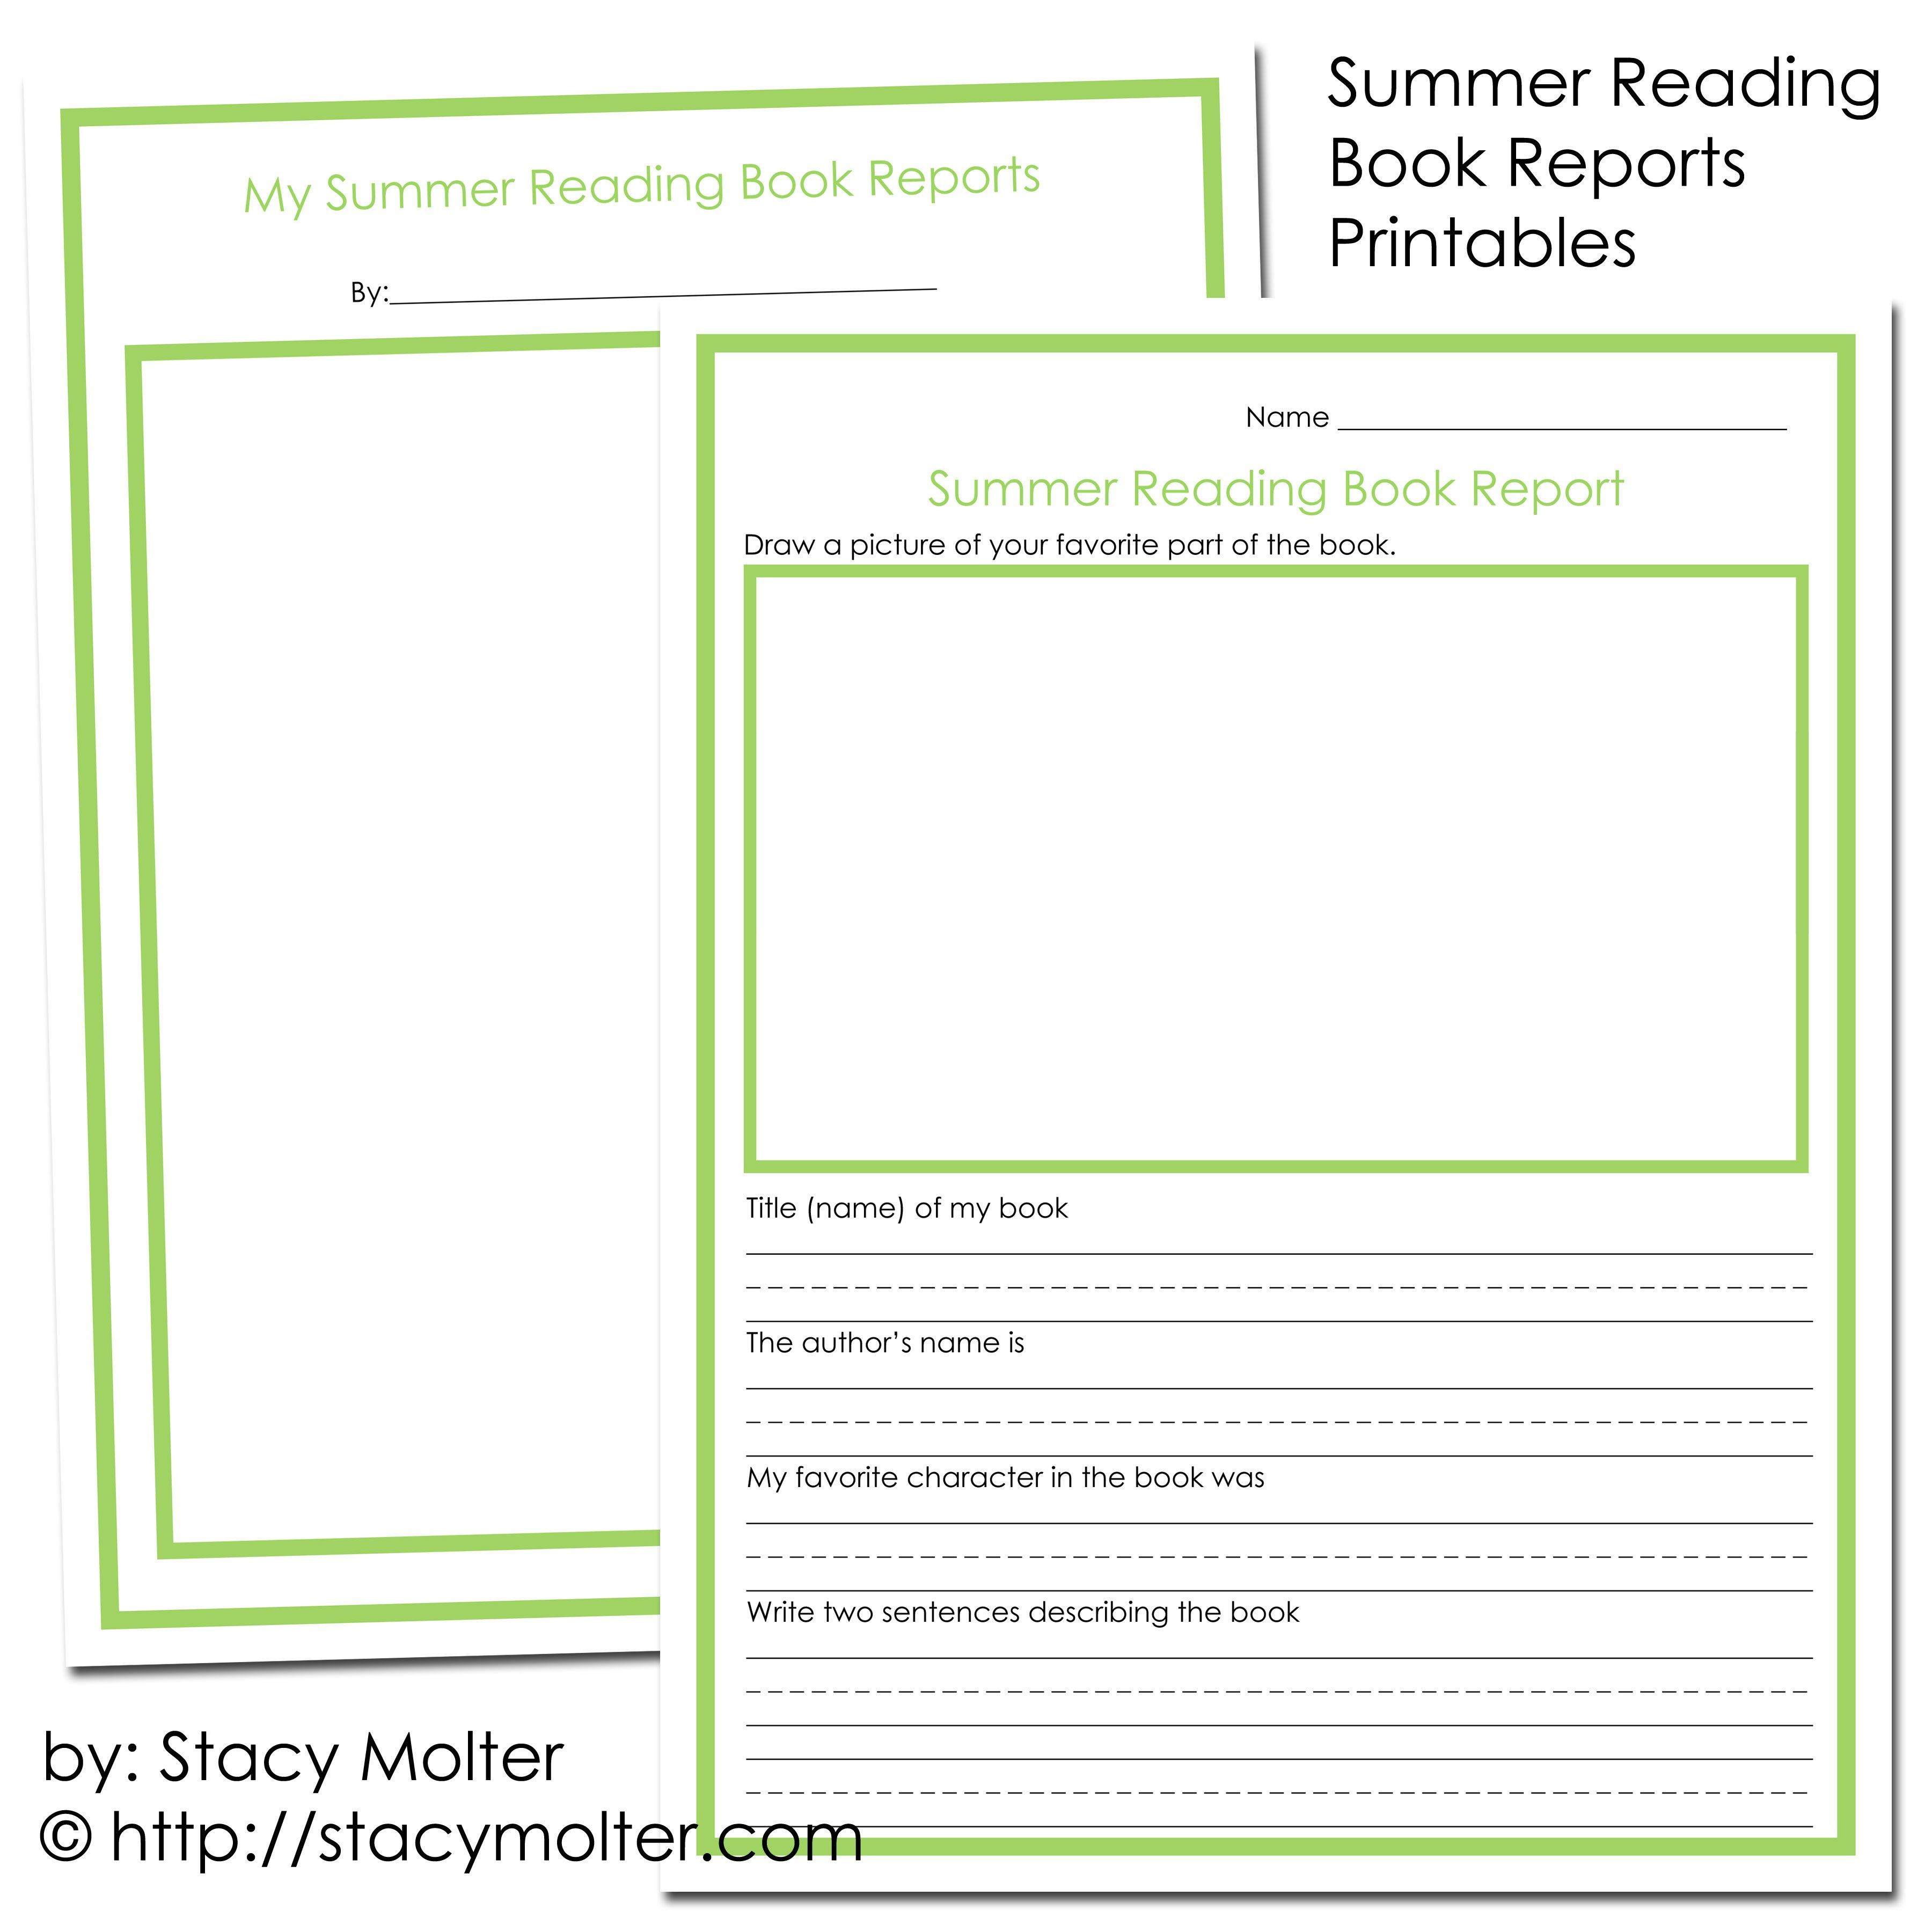 Summer Reading Book Reports Printables